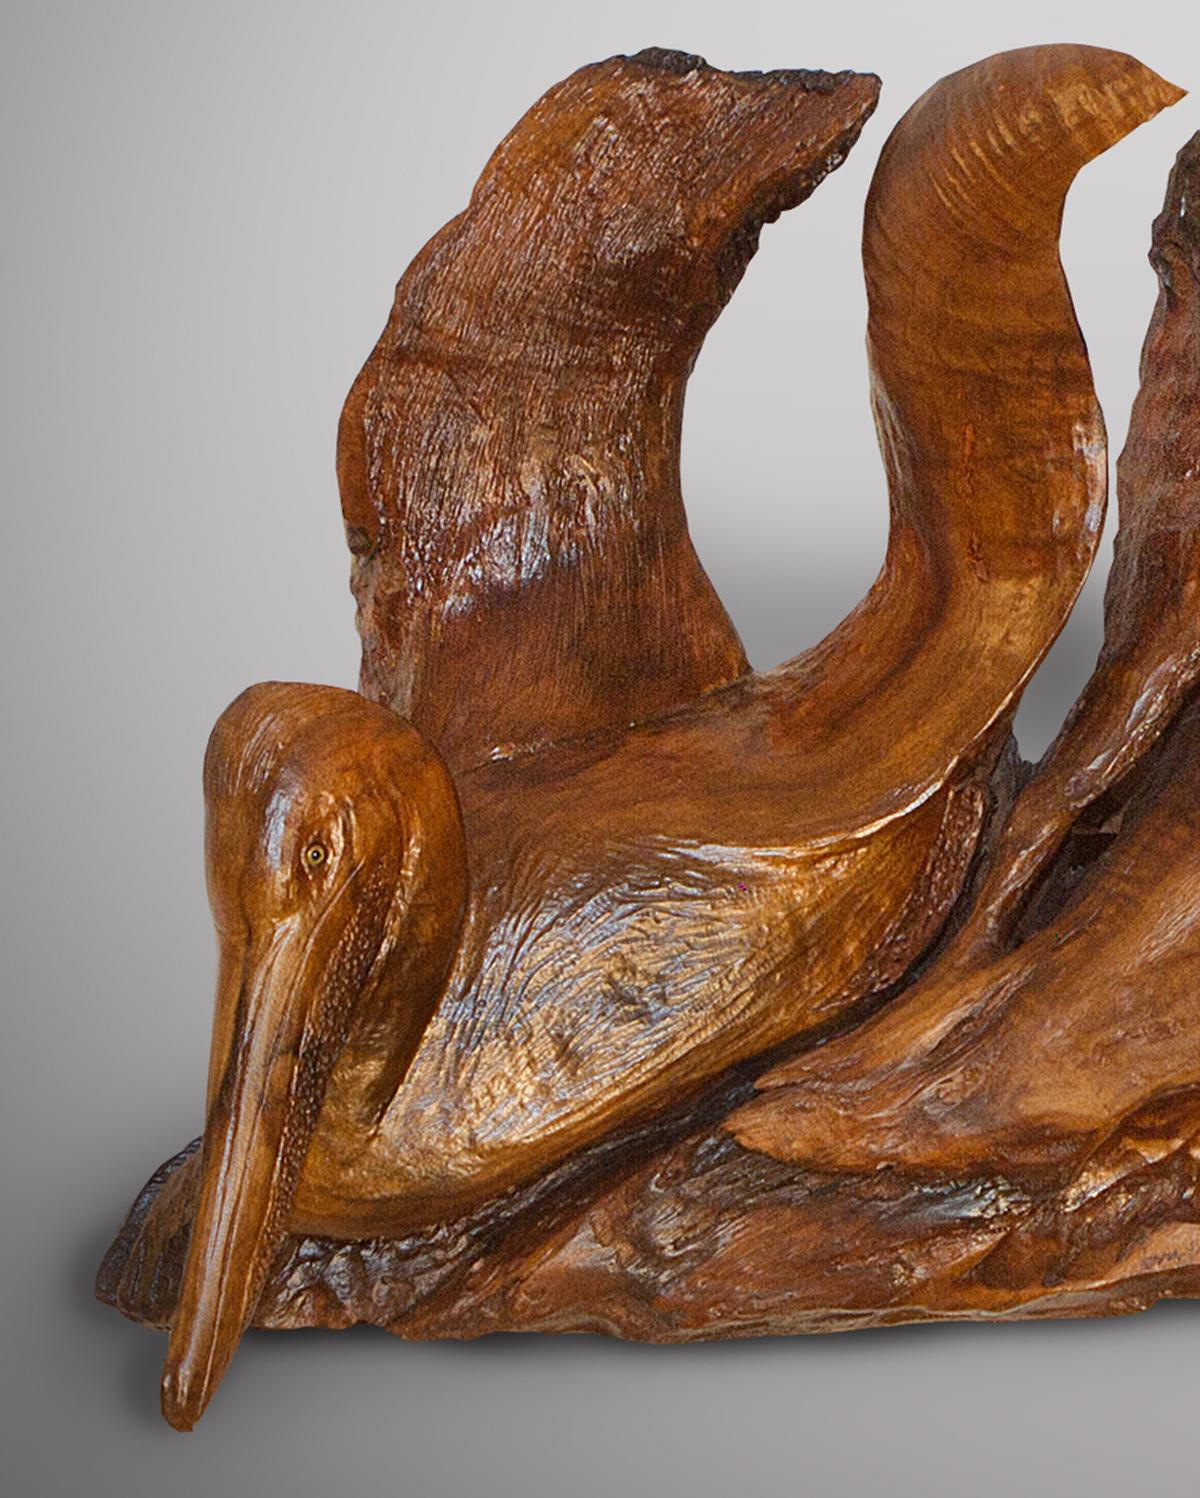 Pelican's Coast | Sculpture by Terry Woodall | Artists for Conservation 2020